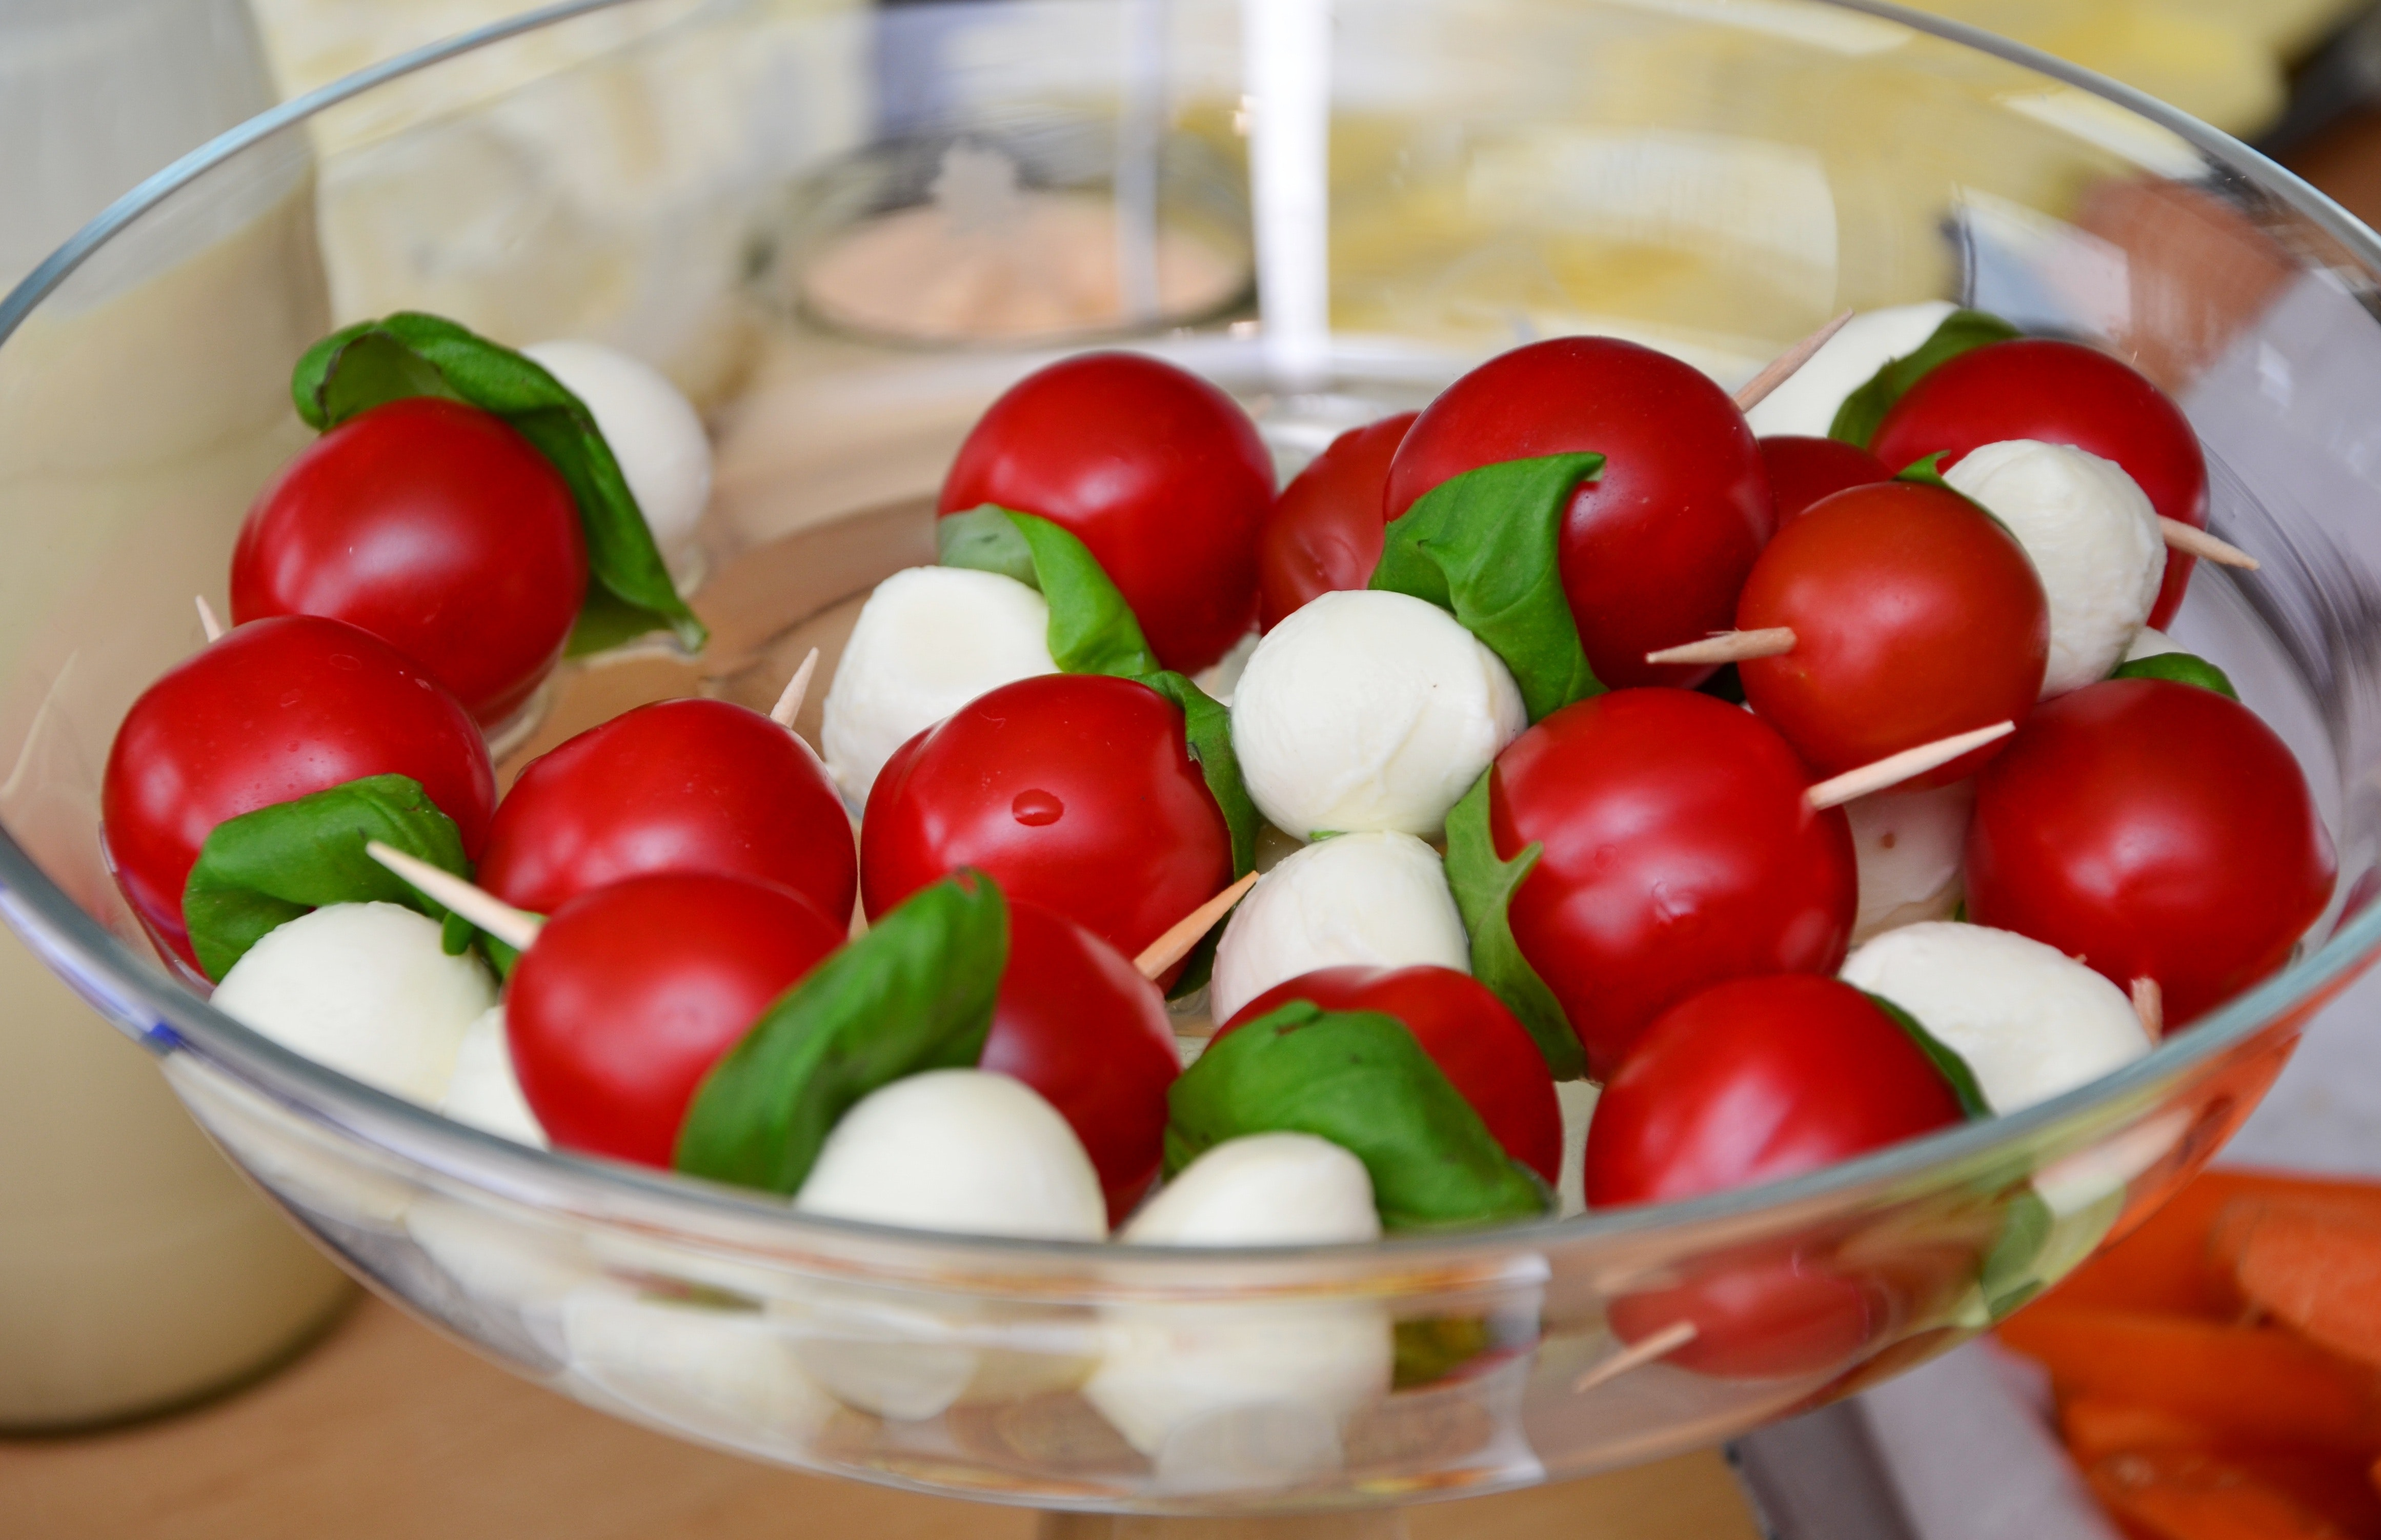 Red round fruit served on clear glass bowl photo